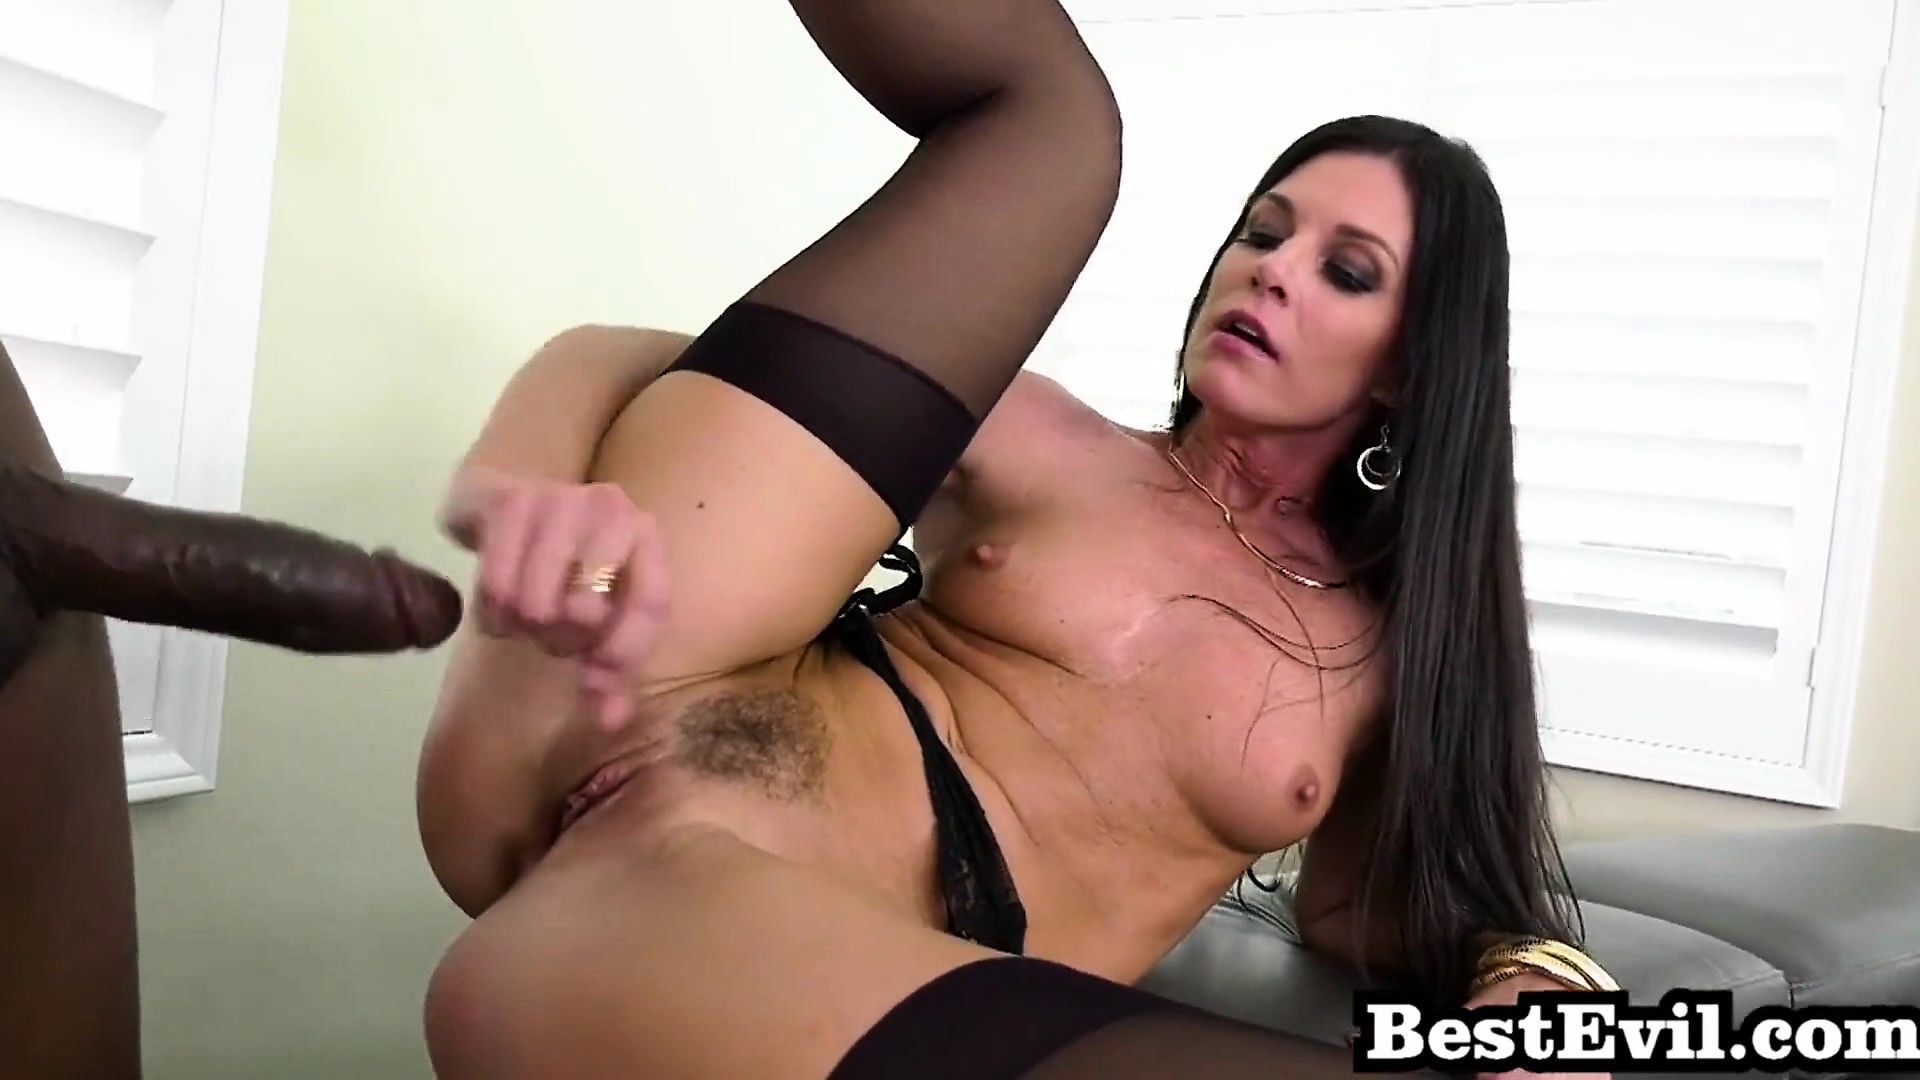 India summer porn gangbanged for explanation